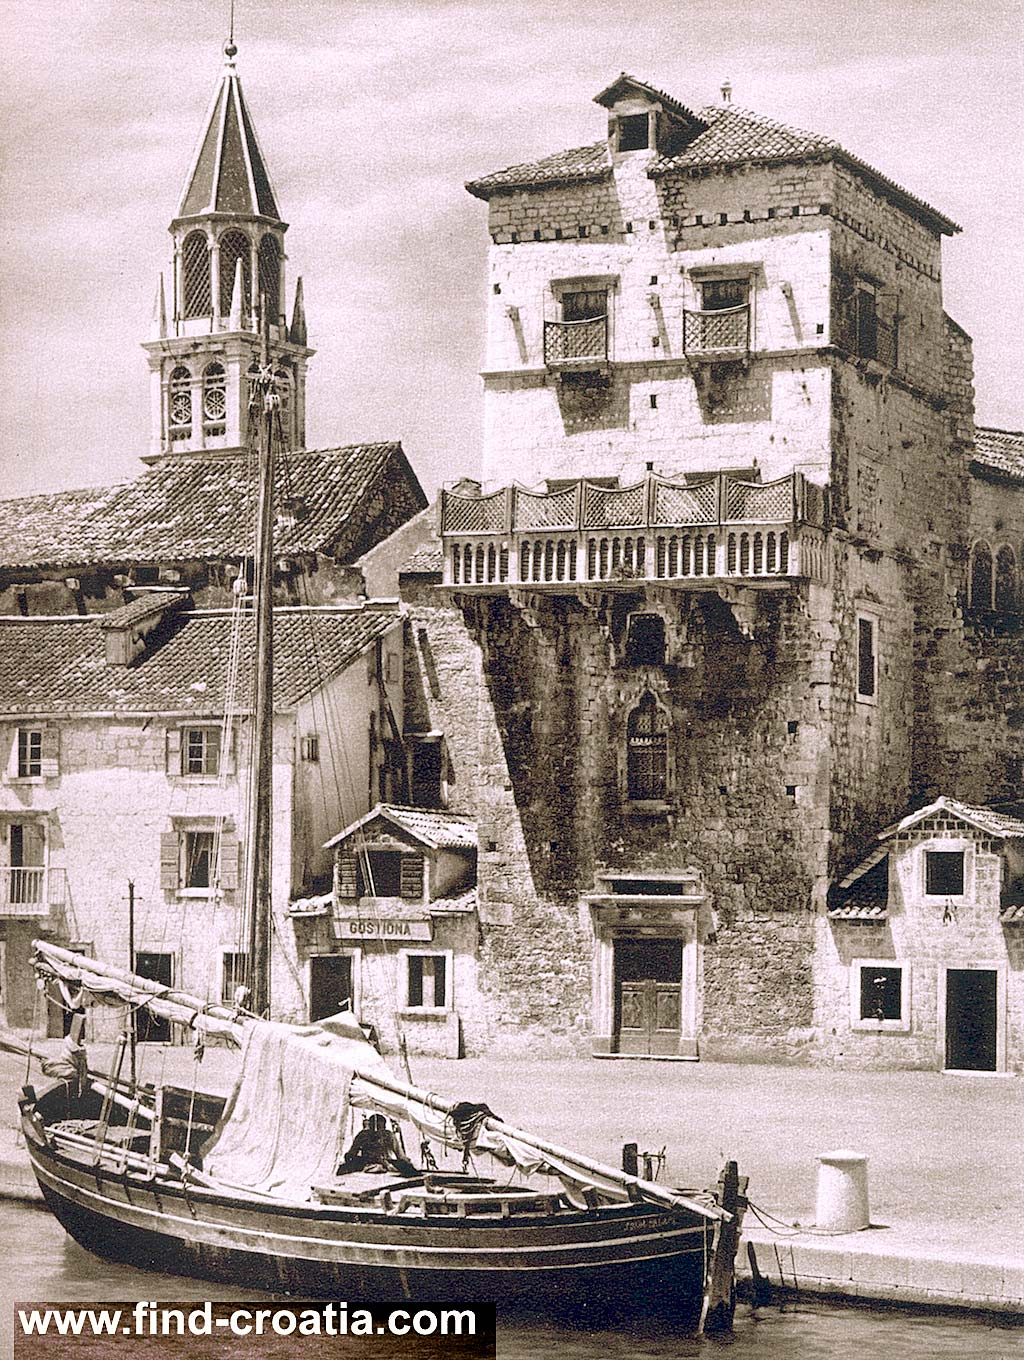 Traditional wooden boat in Trogir harbour in 1920s